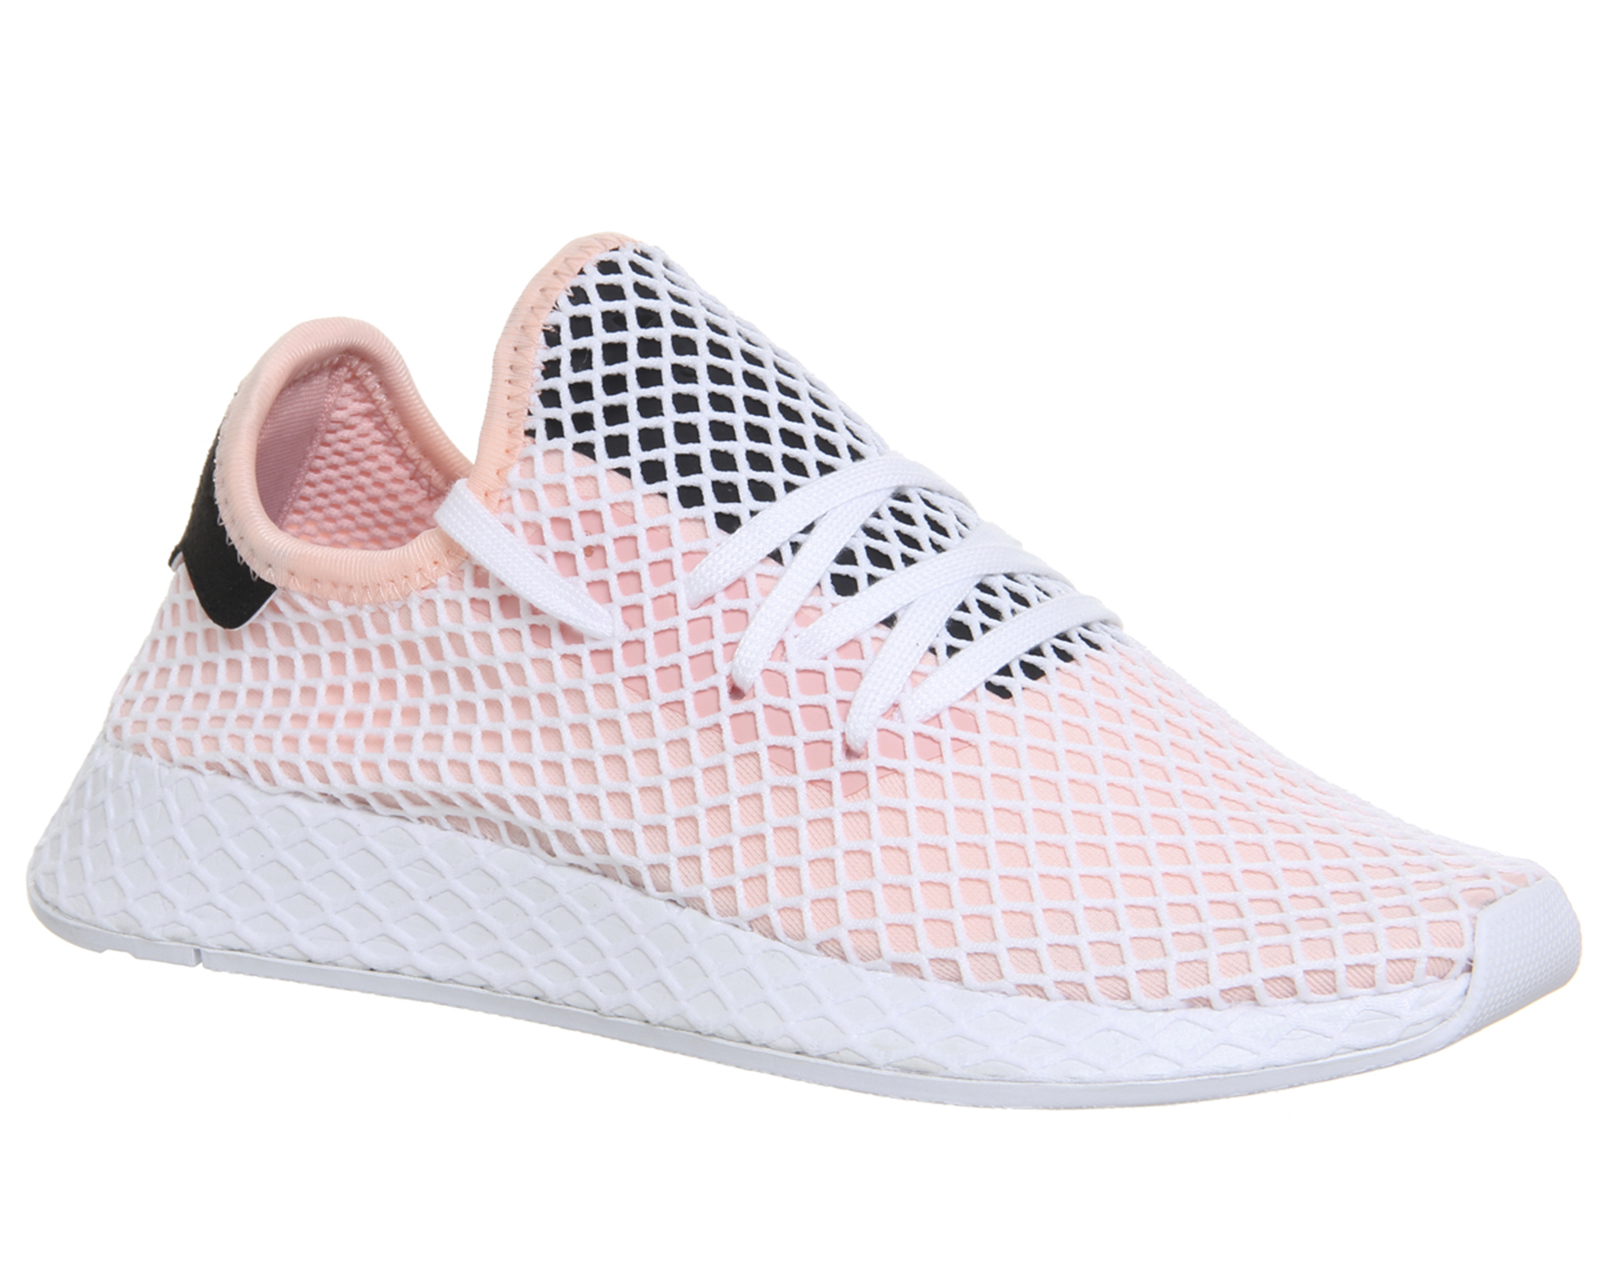 4b854f48333 Details about Mens Adidas Deerupt Trainers Pink White Core Black Trainers  Shoes